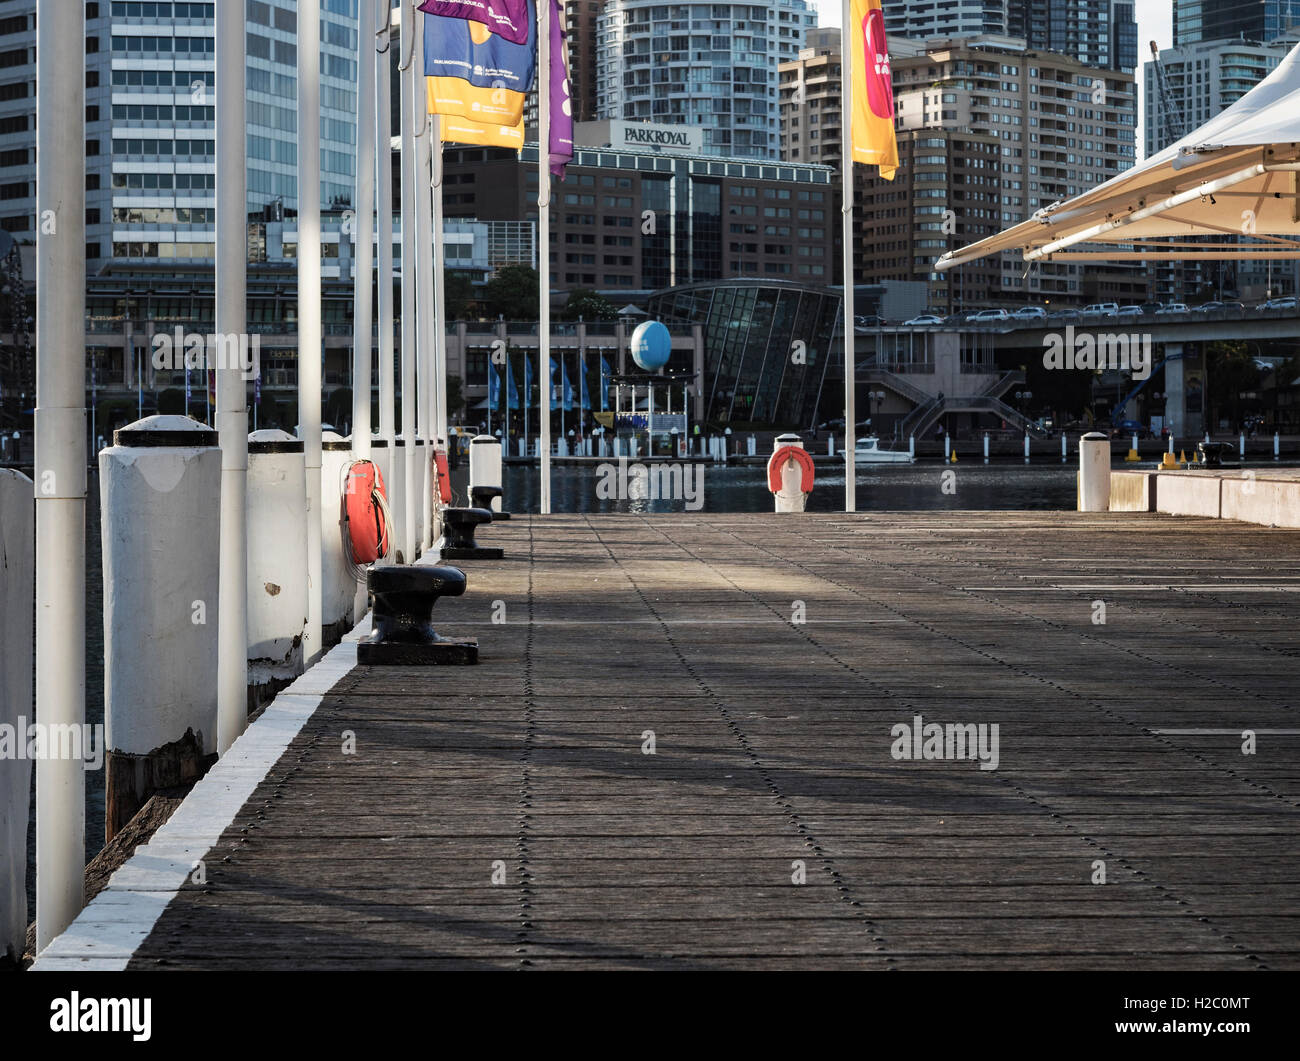 Darling Harbour - Stock Image